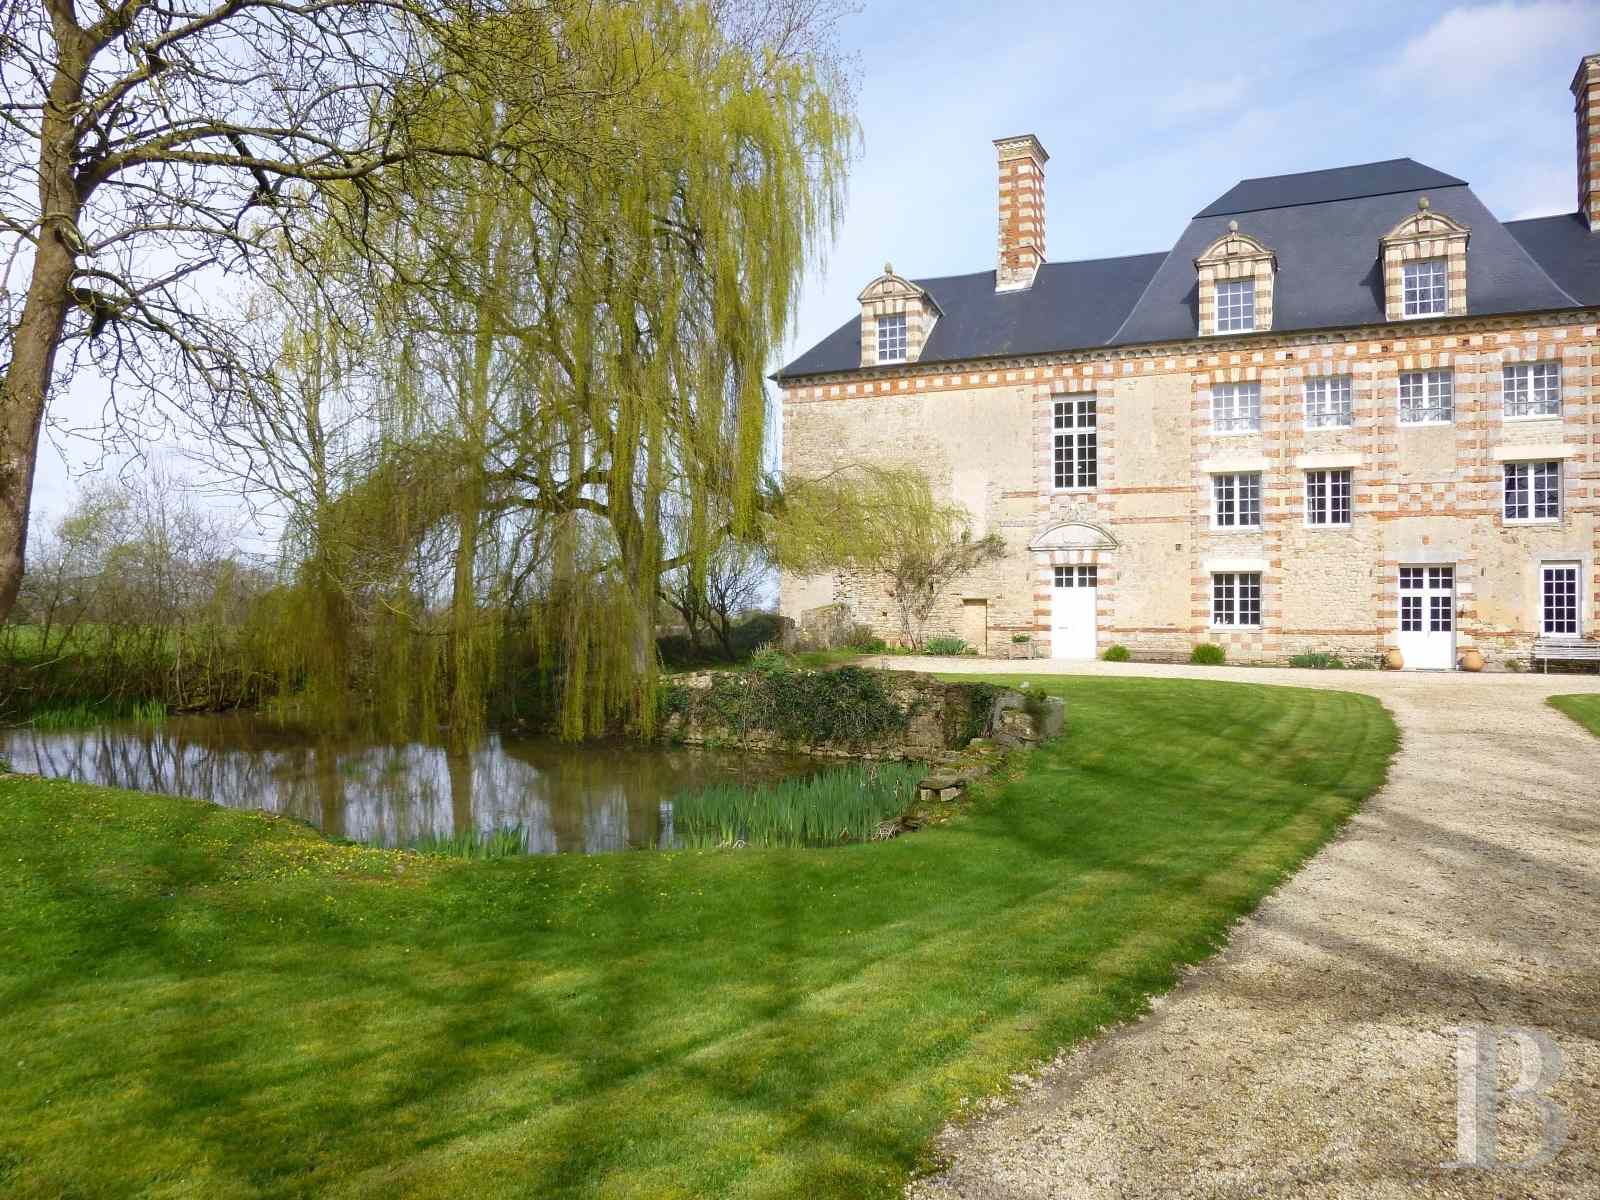 property for sale France lower normandy bessin area - 2 zoom